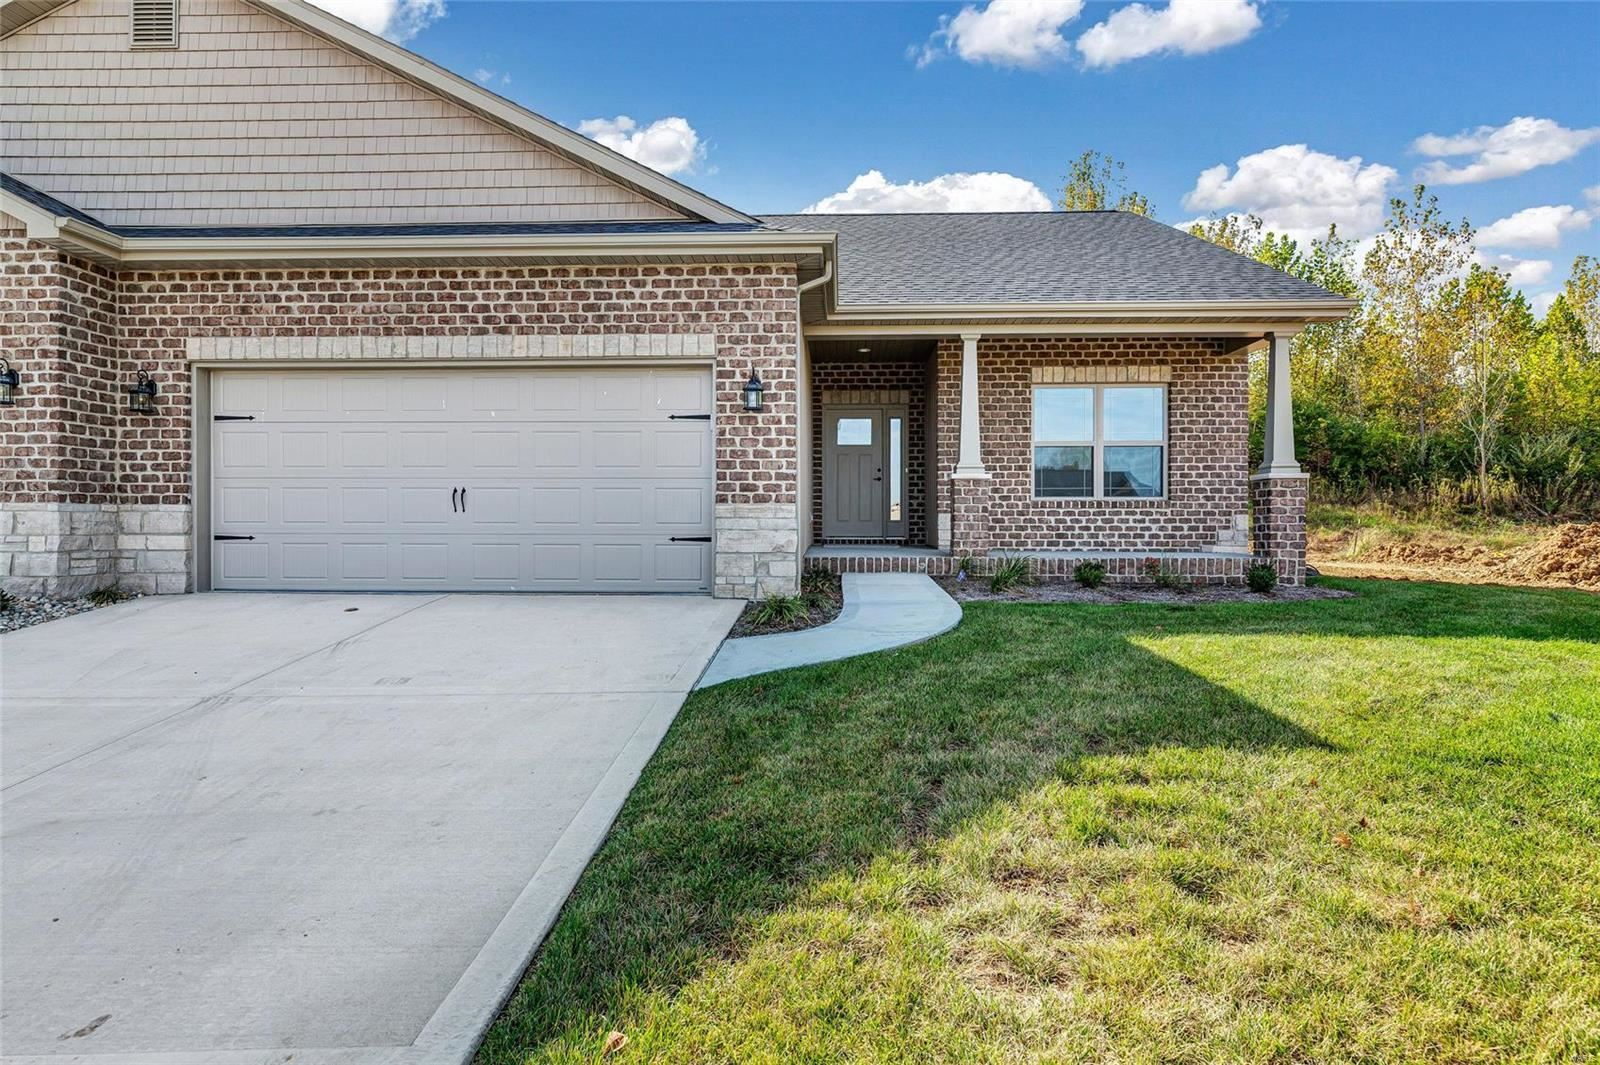 8072 Villa Valley Lane, Caseyville, IL 62232 - MLS#: 19048078